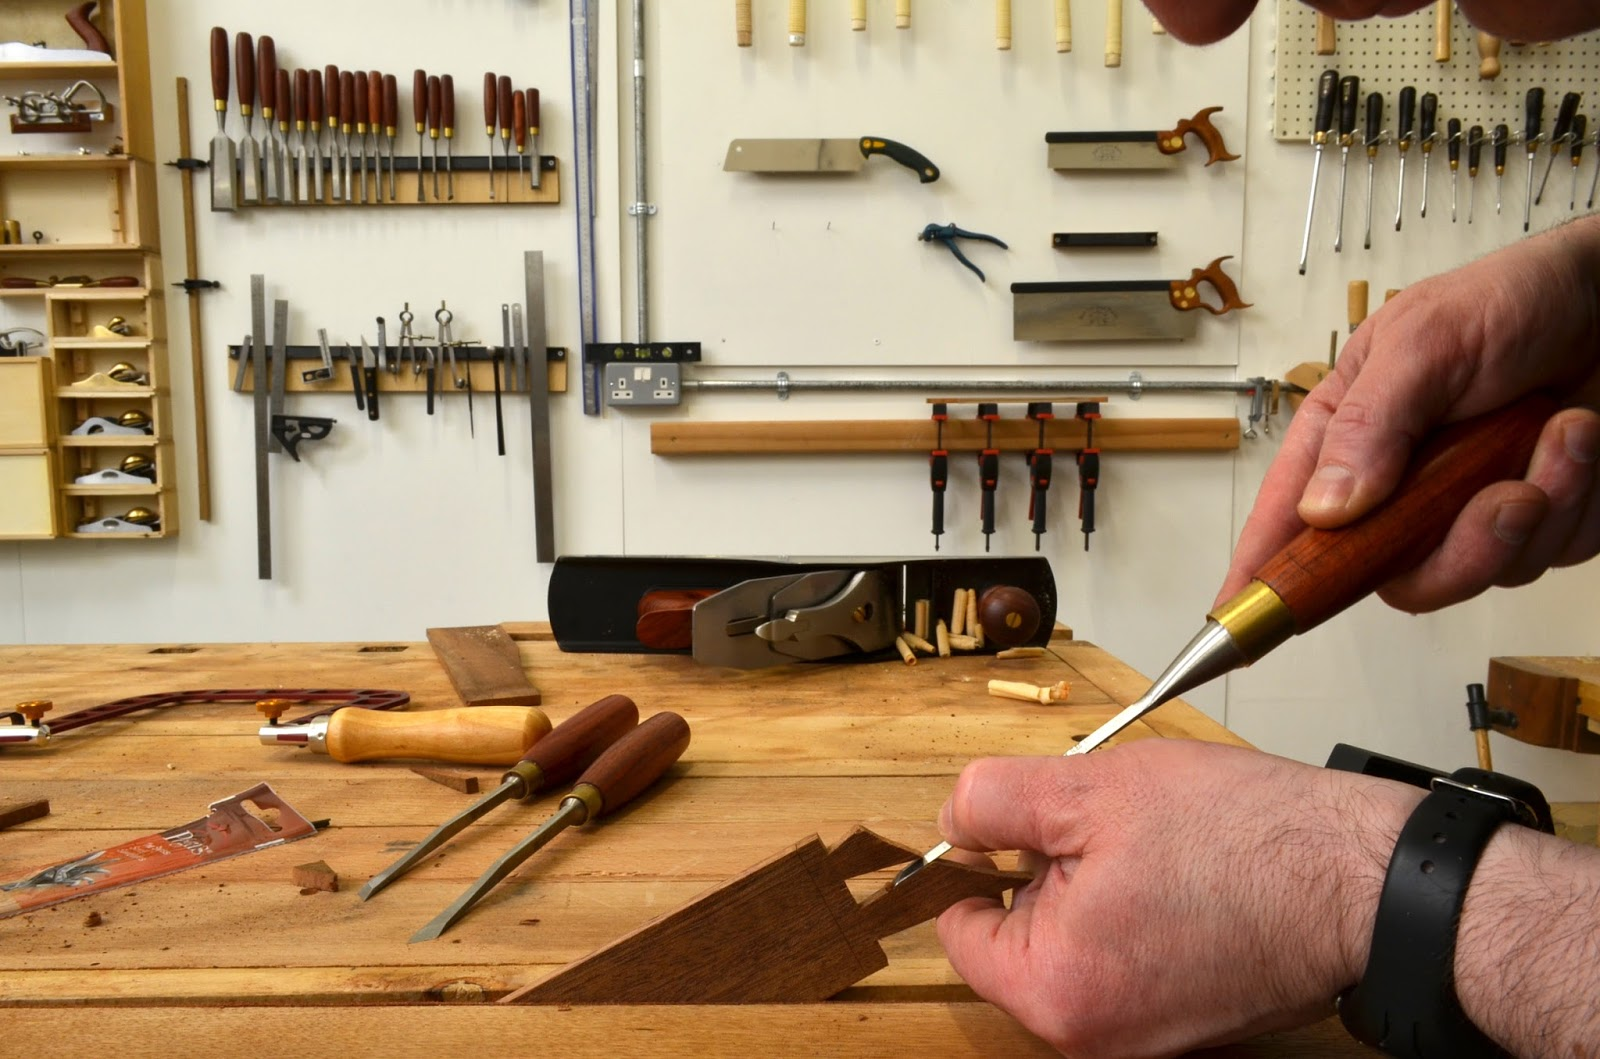 Cleaning up the dovetail waste